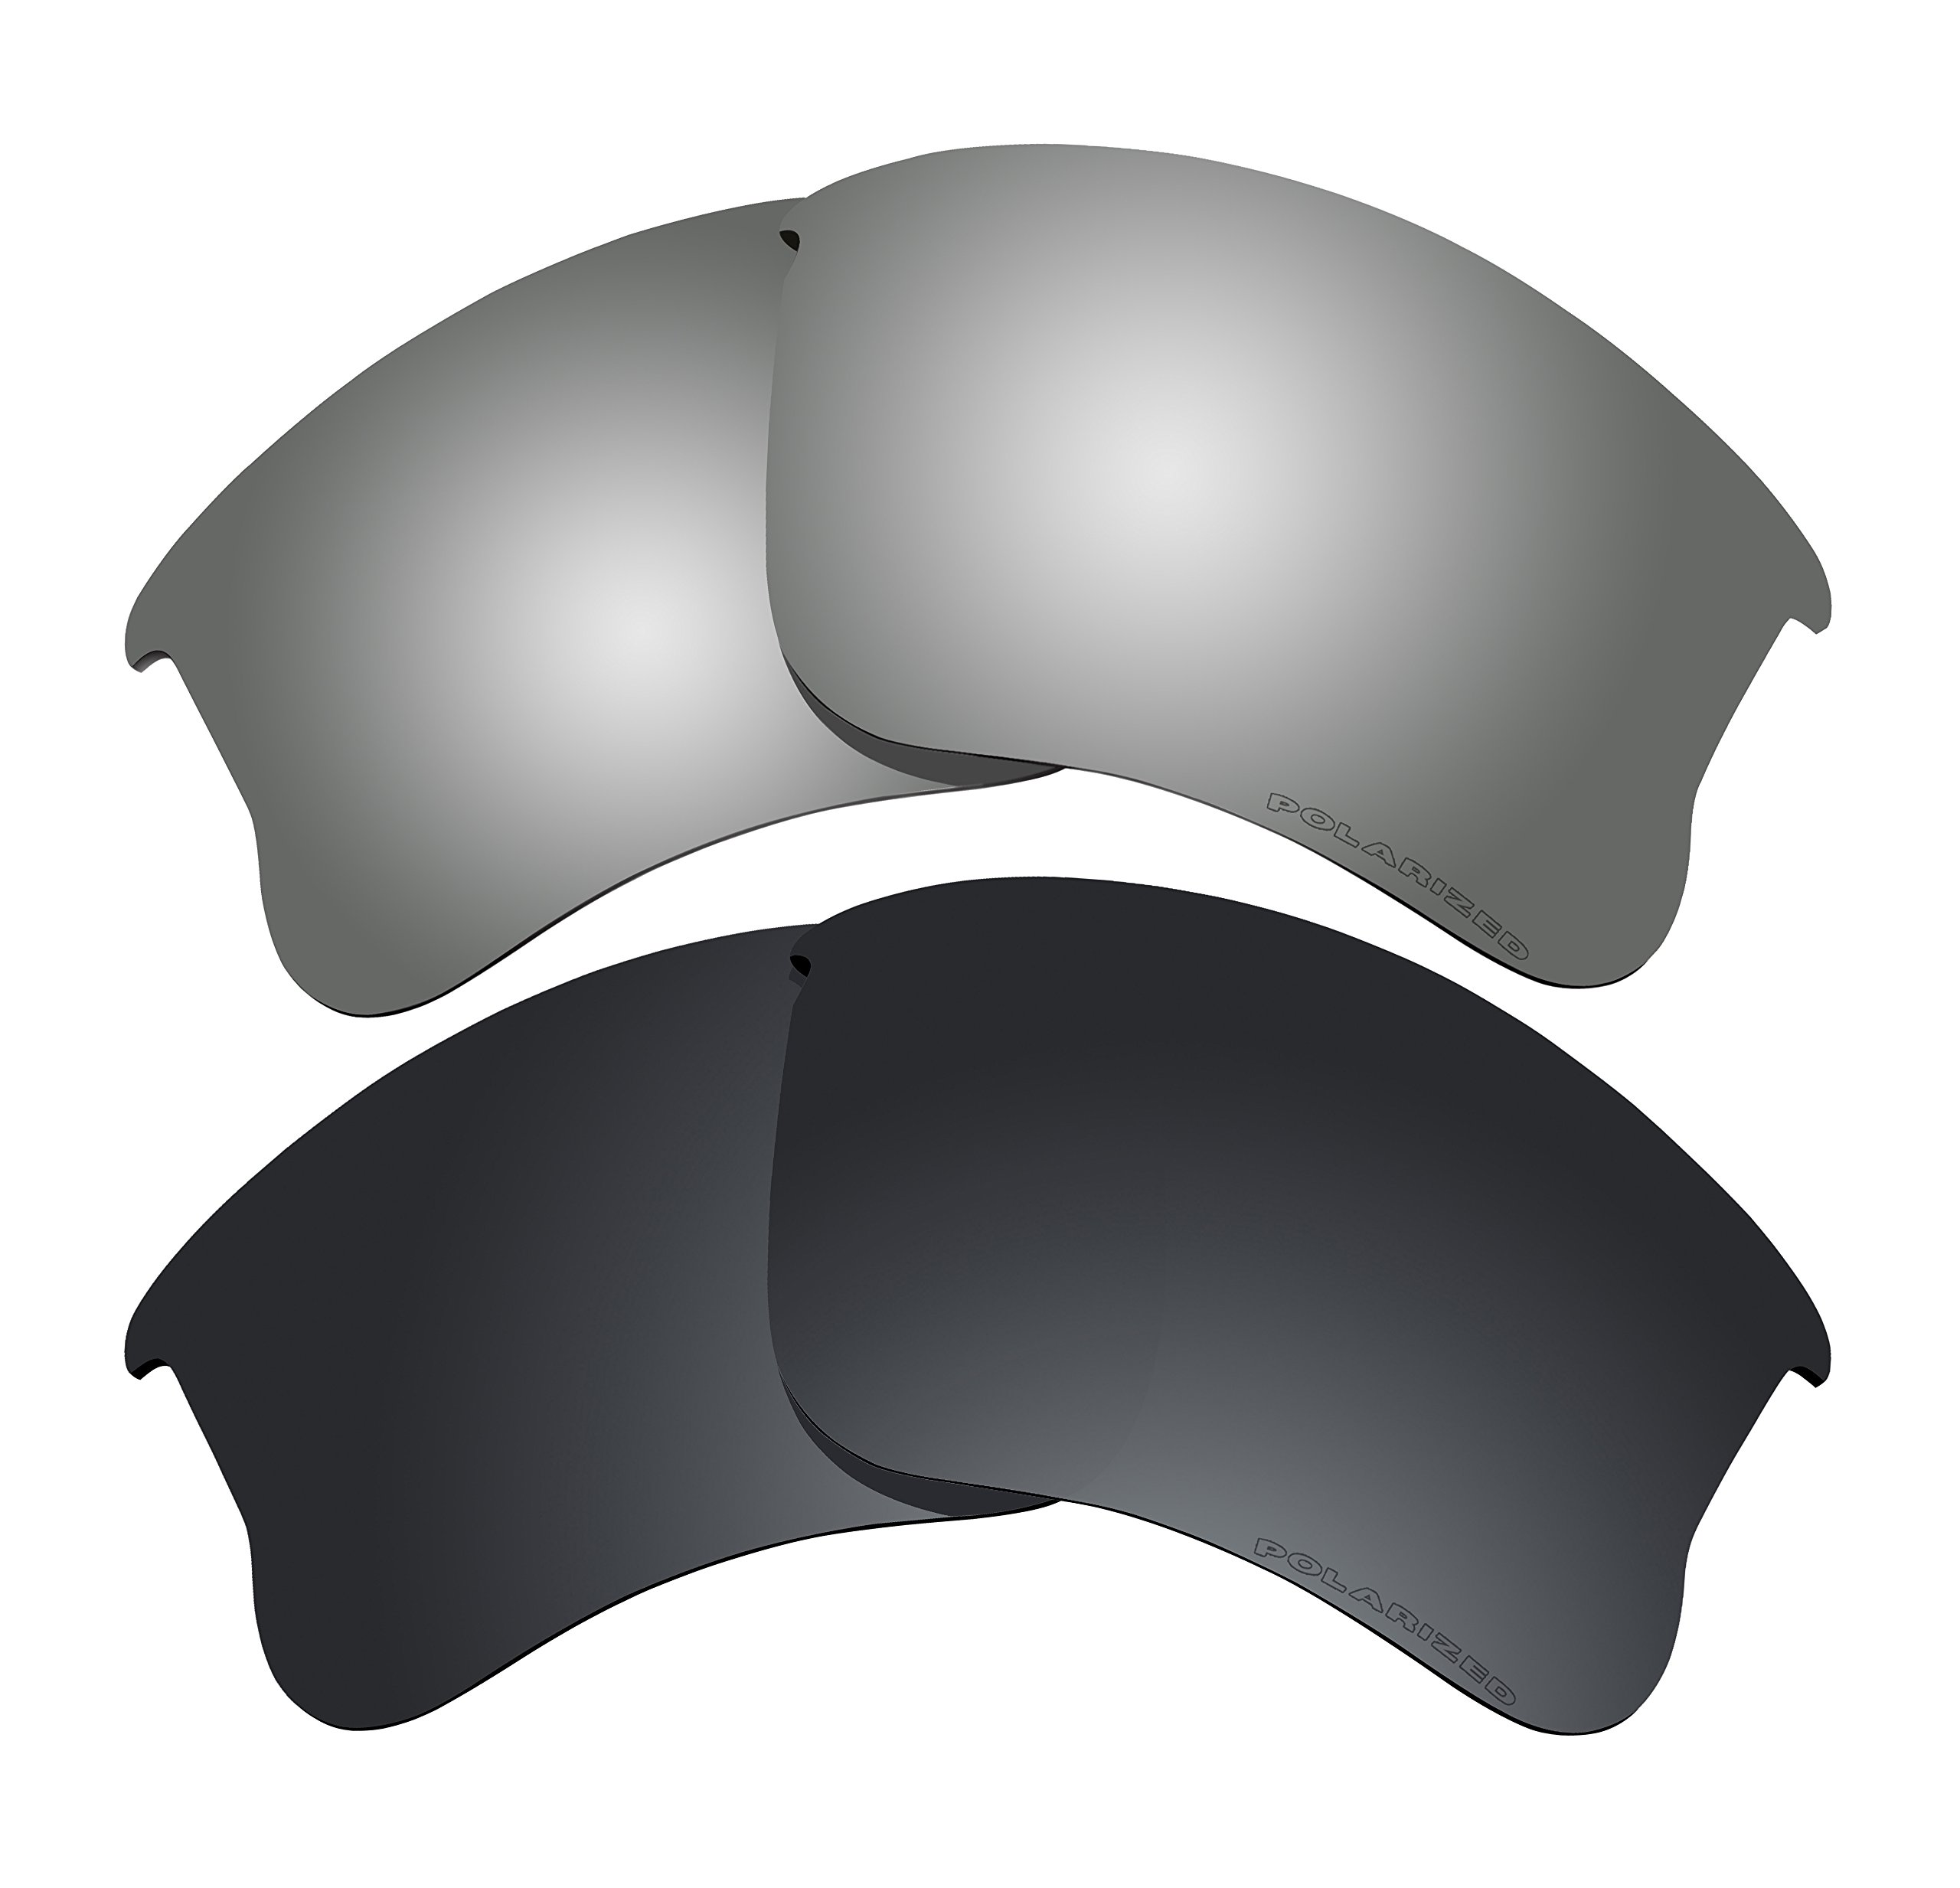 Polarized Lens Replacement Fit for Oakley Flak Jacket XLJ Sunglass 2 Pairs of Lenses Pack N18 by BVANQ (Image #1)